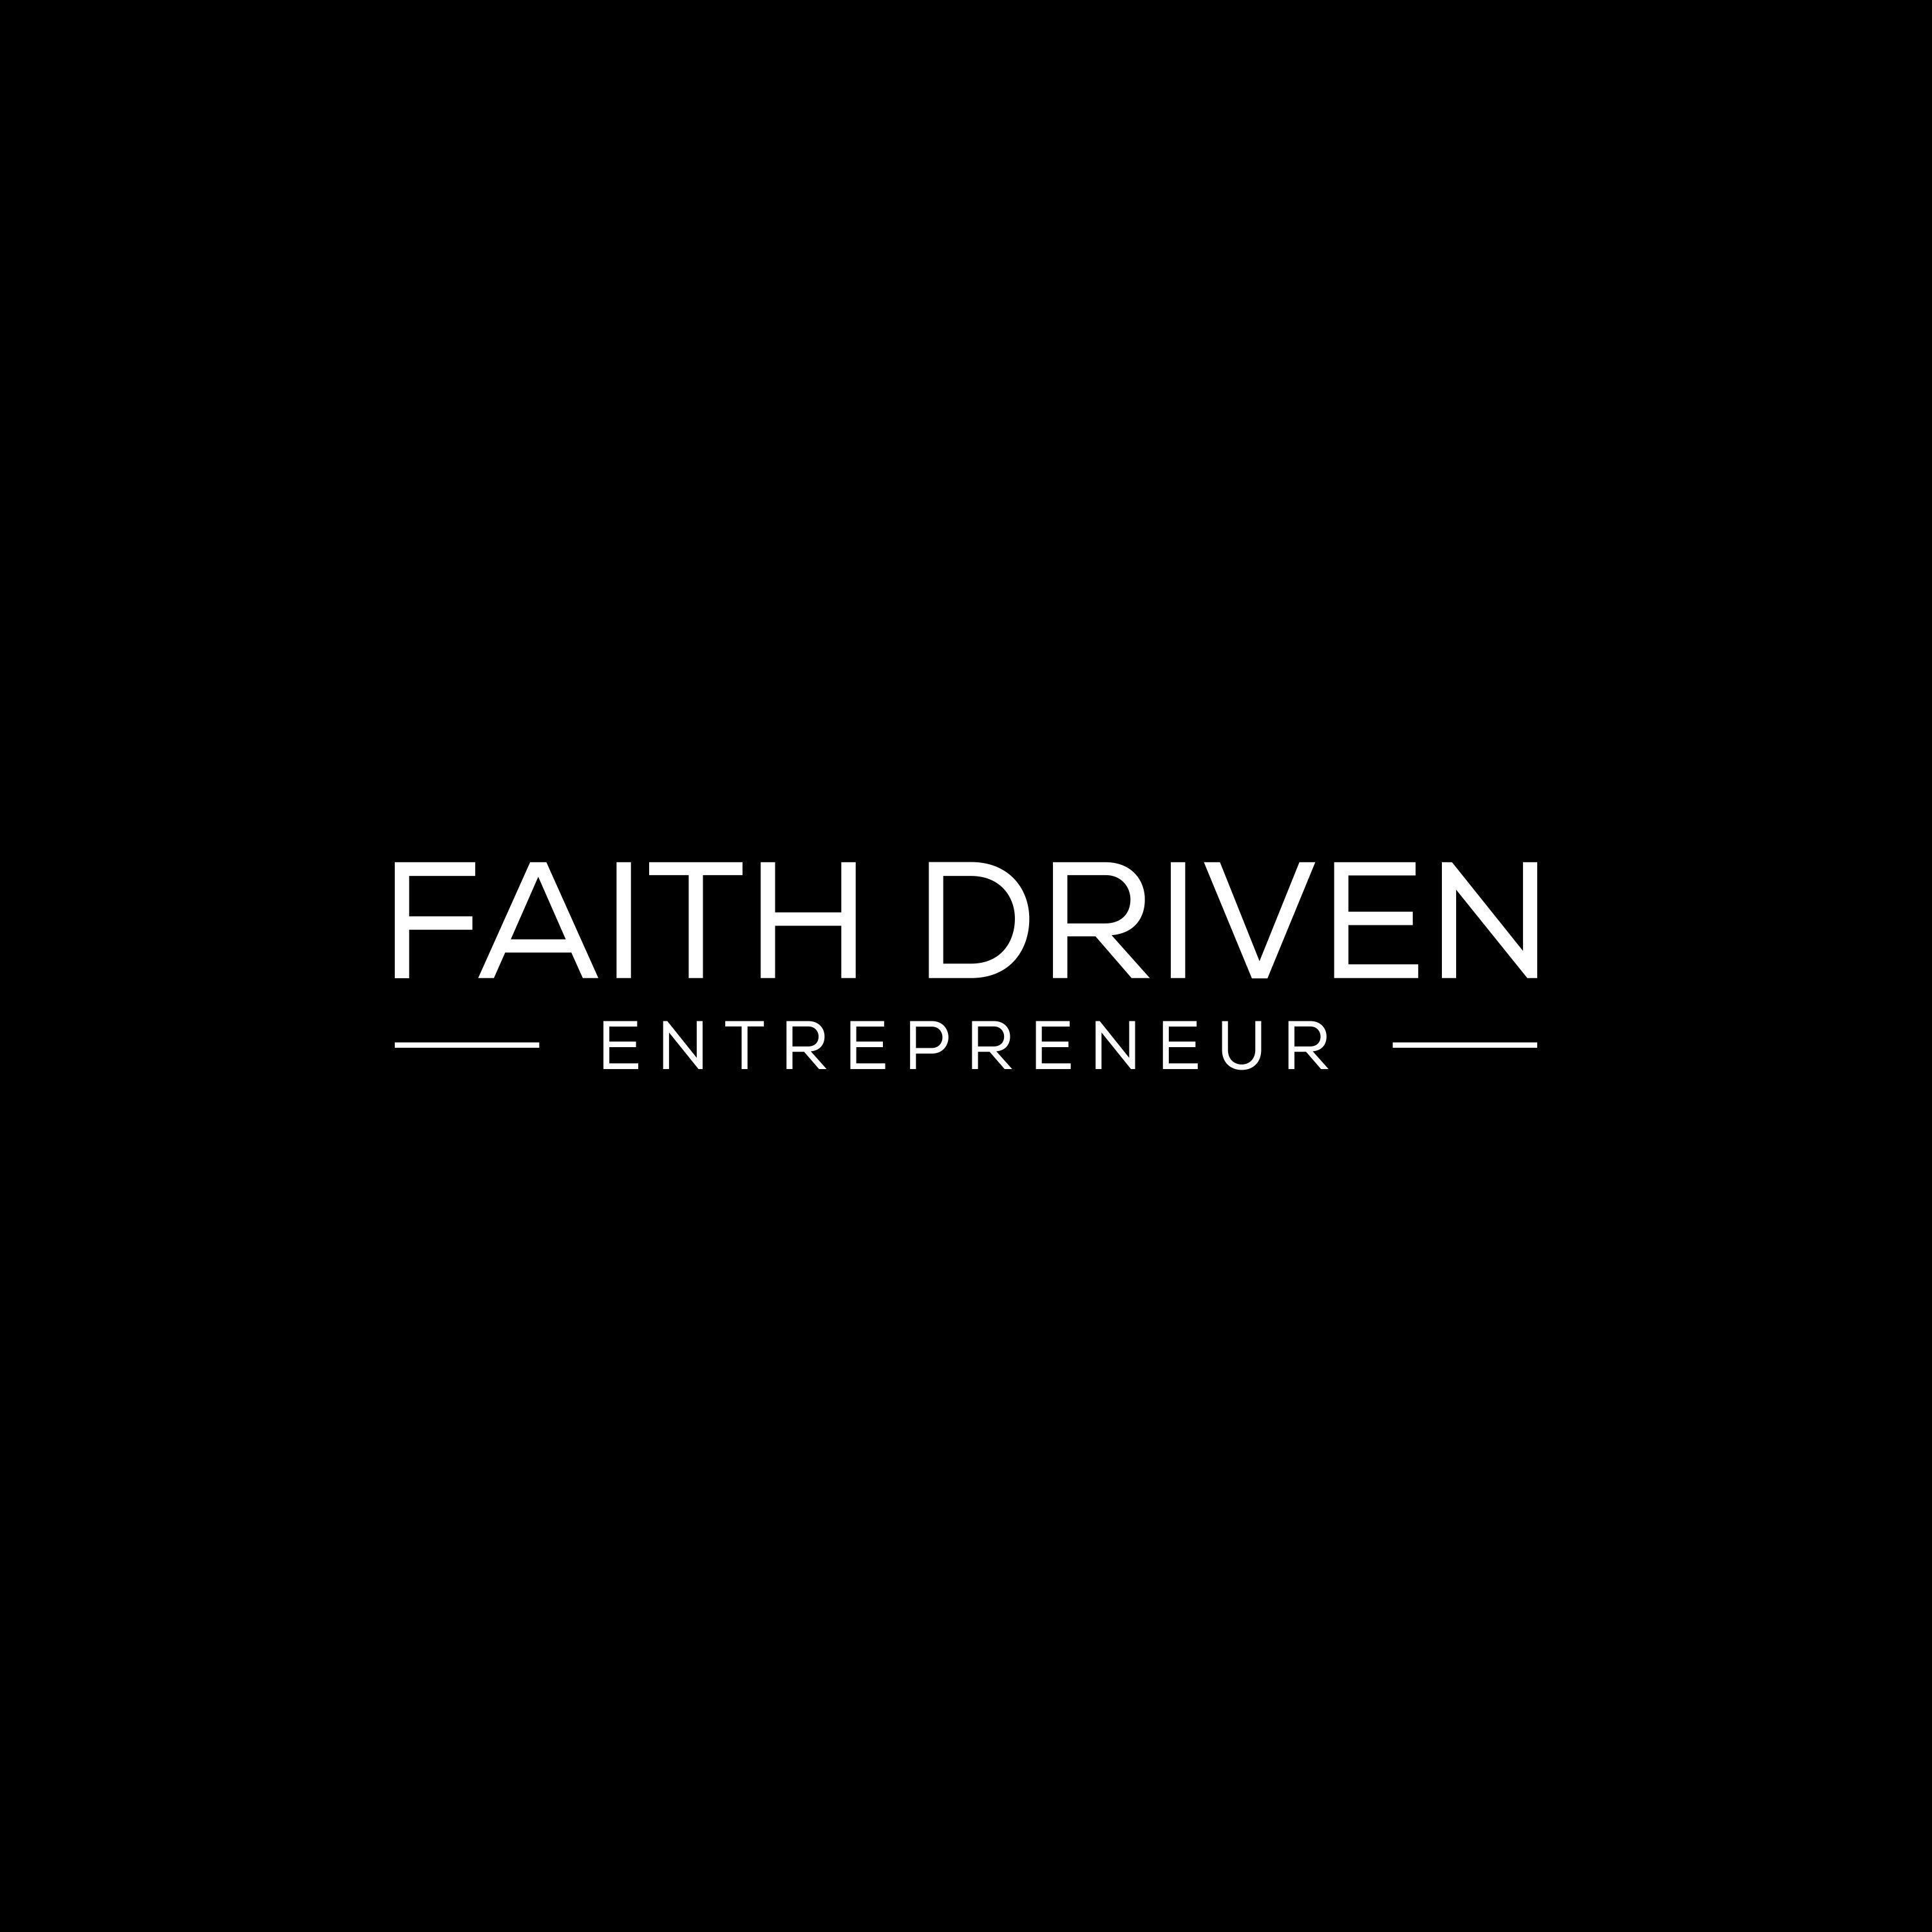 Faith Driven Entrepreneur - Blog — Faith Driven Entrepreneur